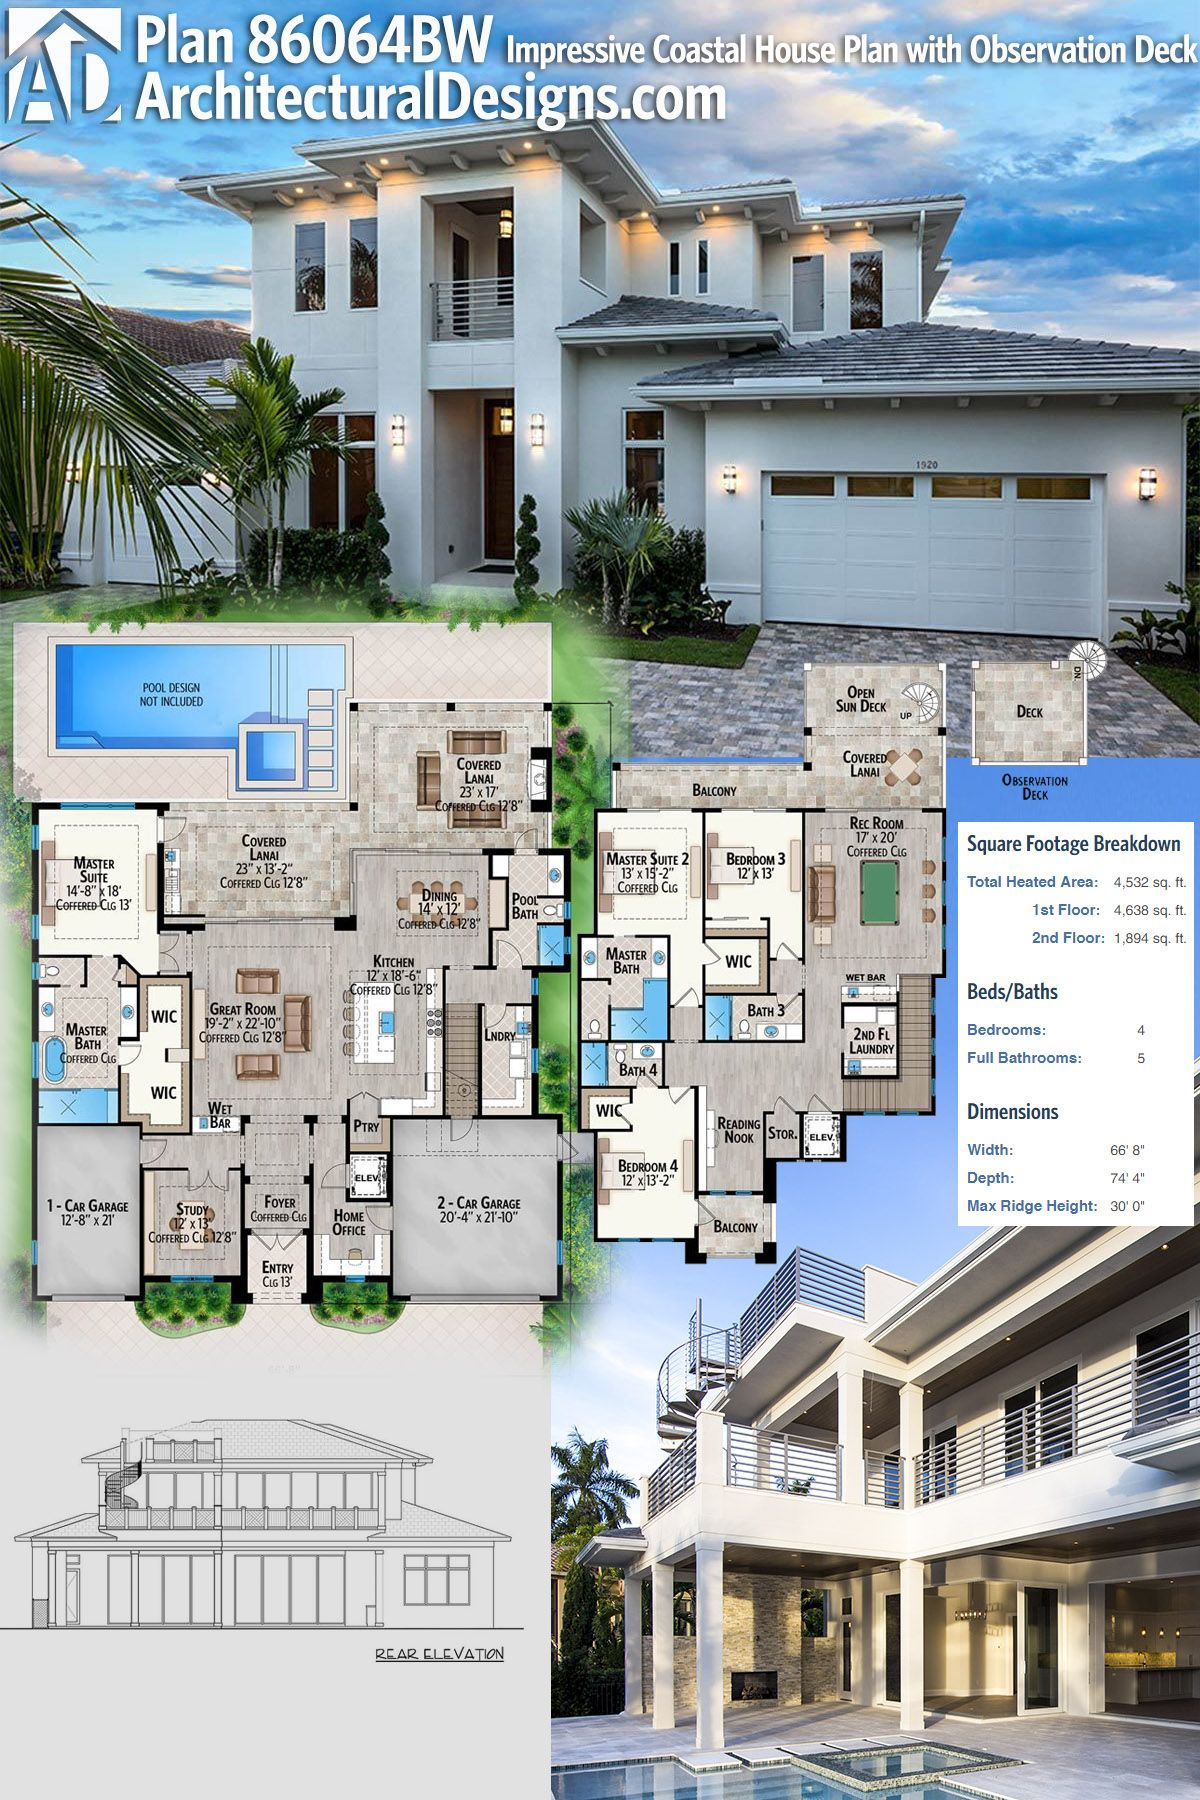 Architectural Designs House Plan 86064BW gives you